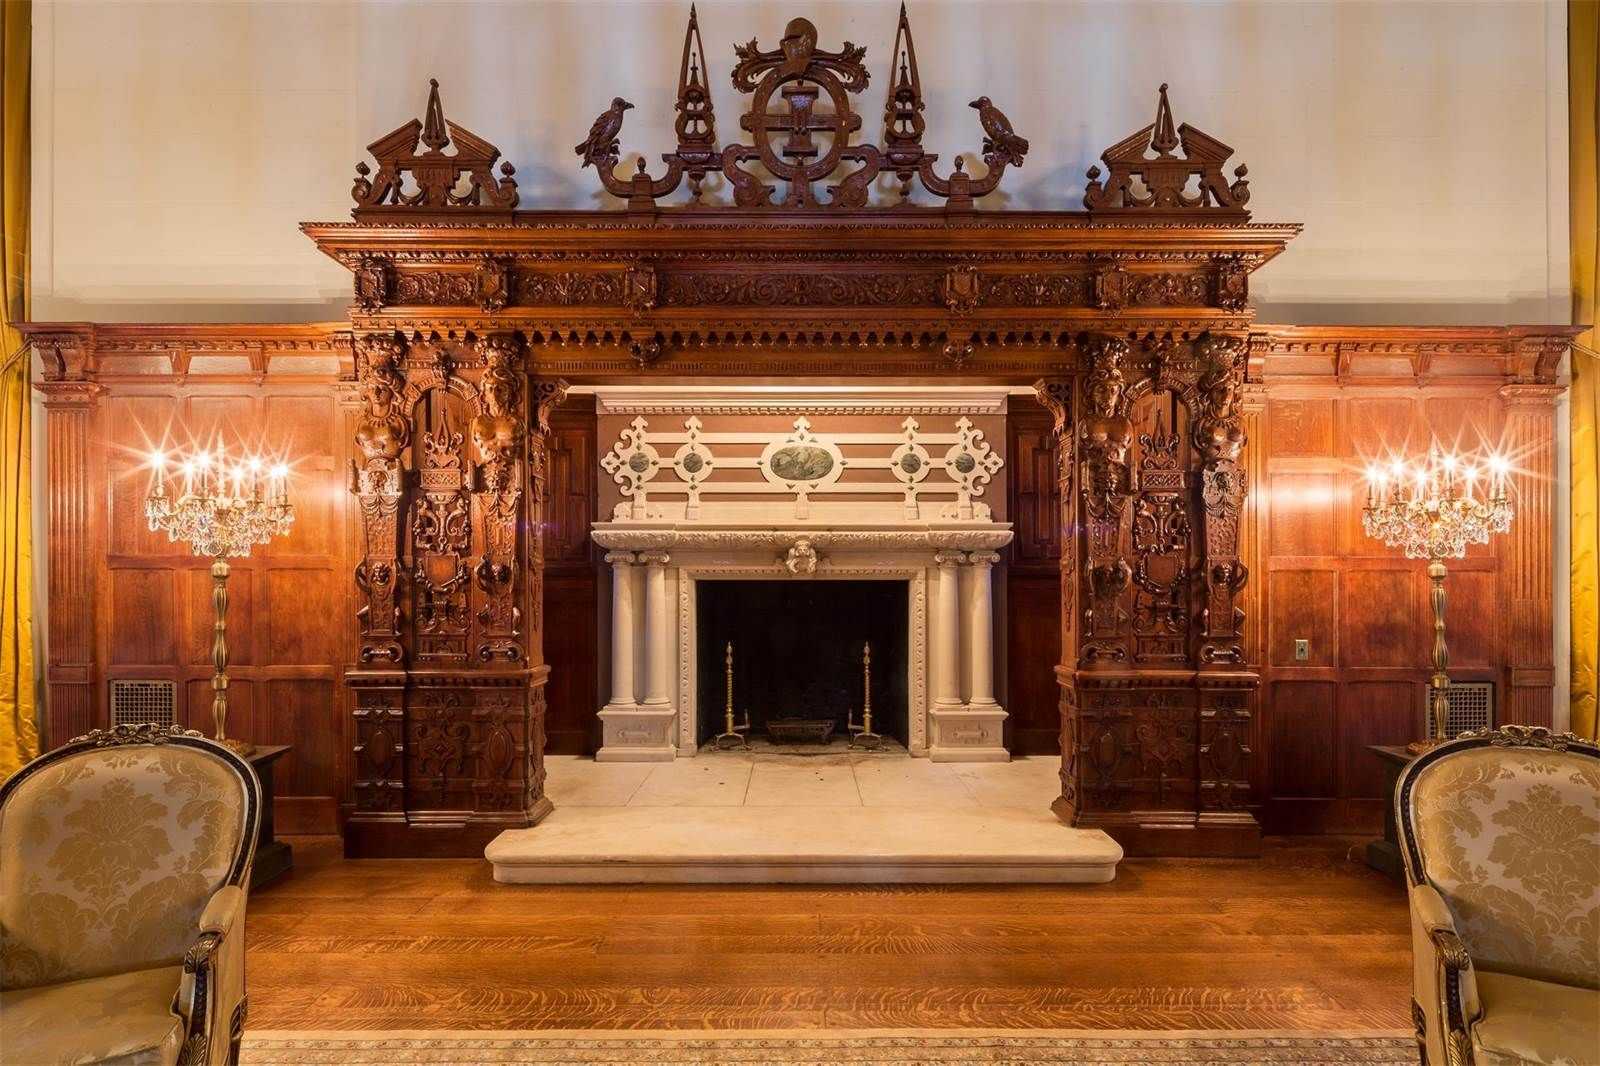 darlington new york metro mansion a luxury home for sale in the crocker mansion in mahwah new jersey a square foot single family home built by architect james brite in it is on the national register of historic